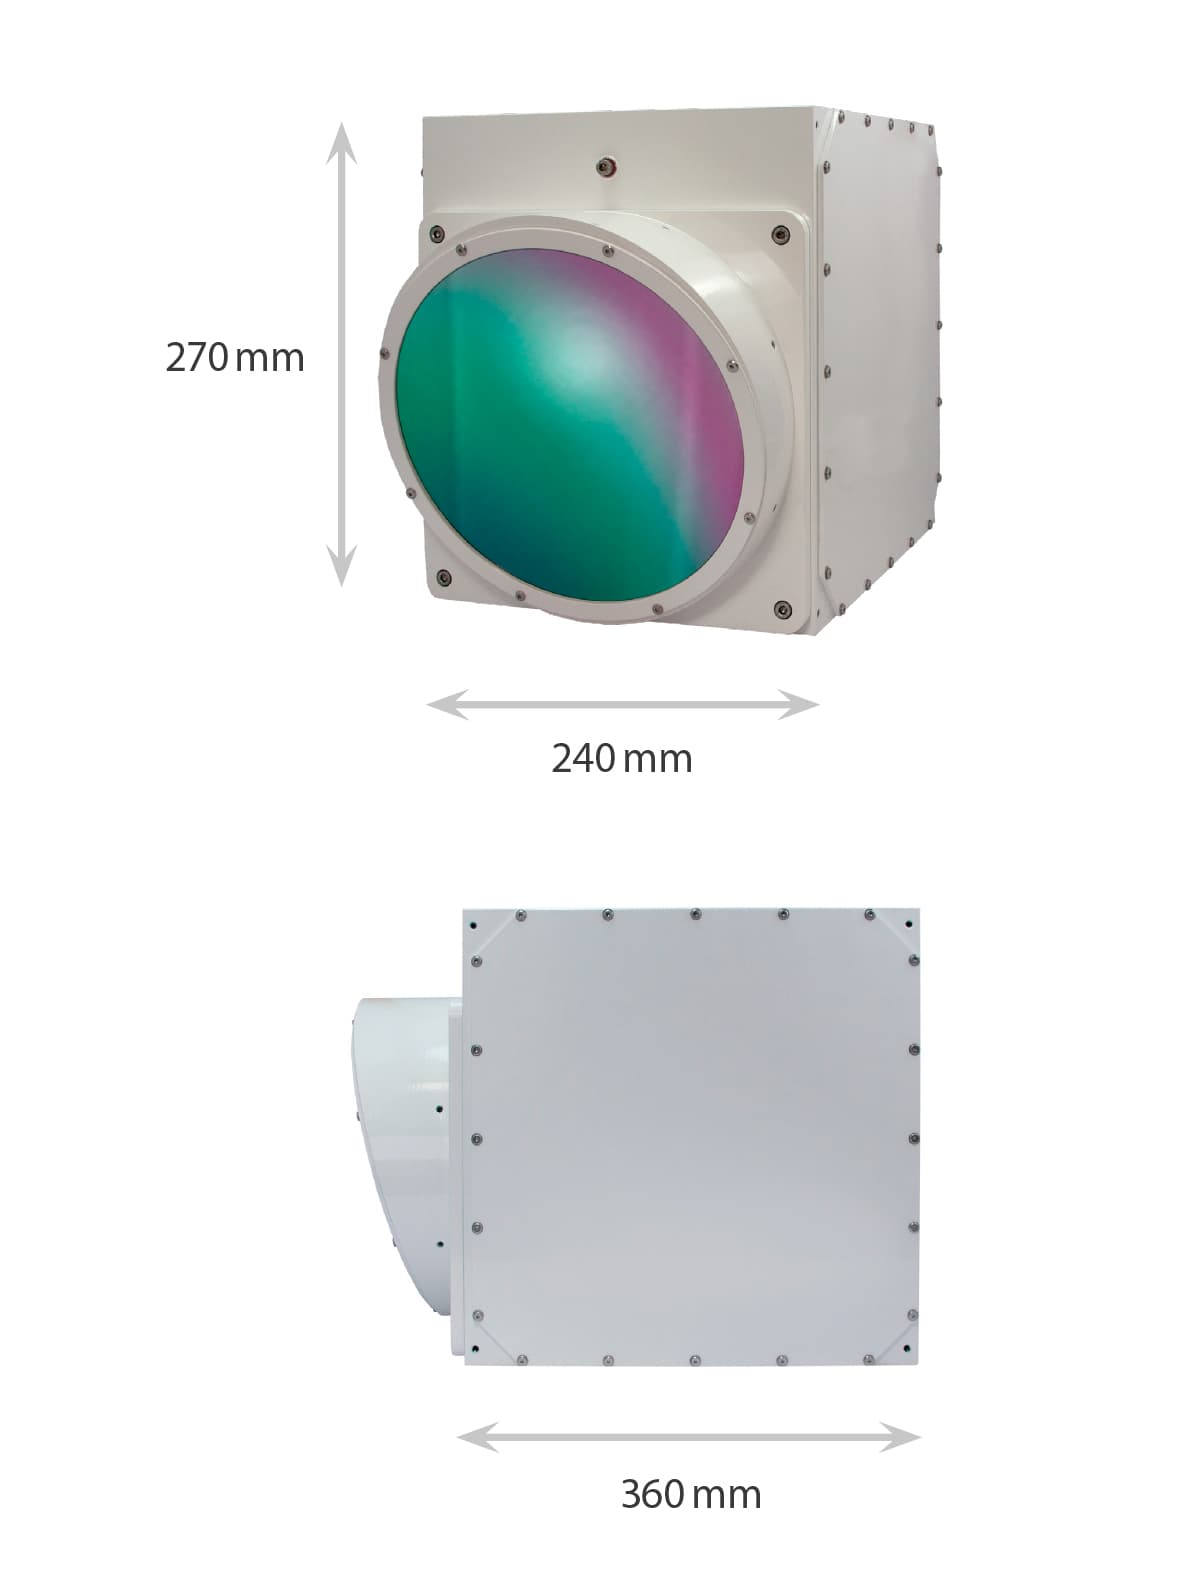 Dimensions of the ImageIR Z